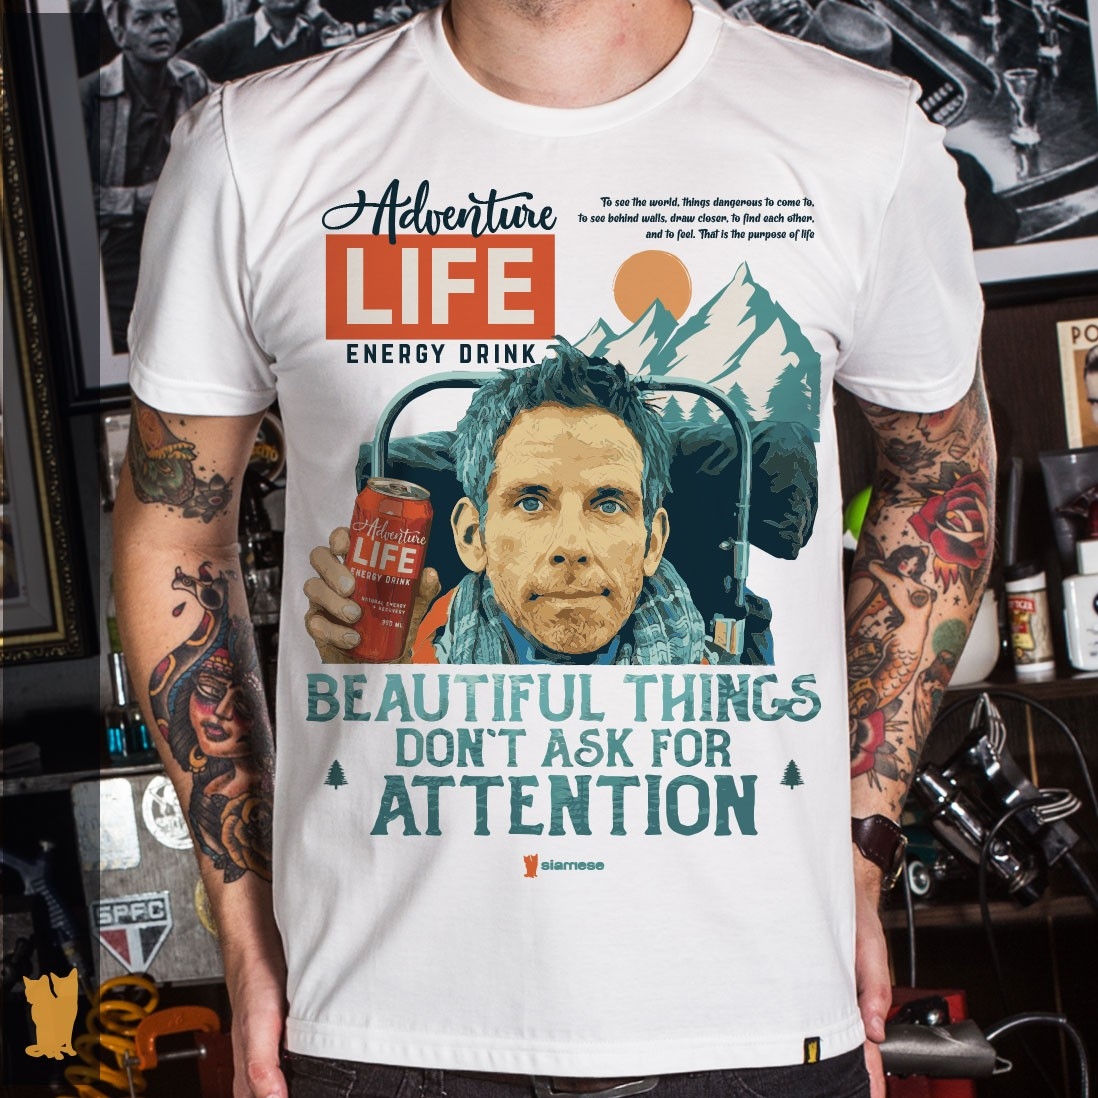 CAMISETA WALTER MITTY ADVENTURE LIFE